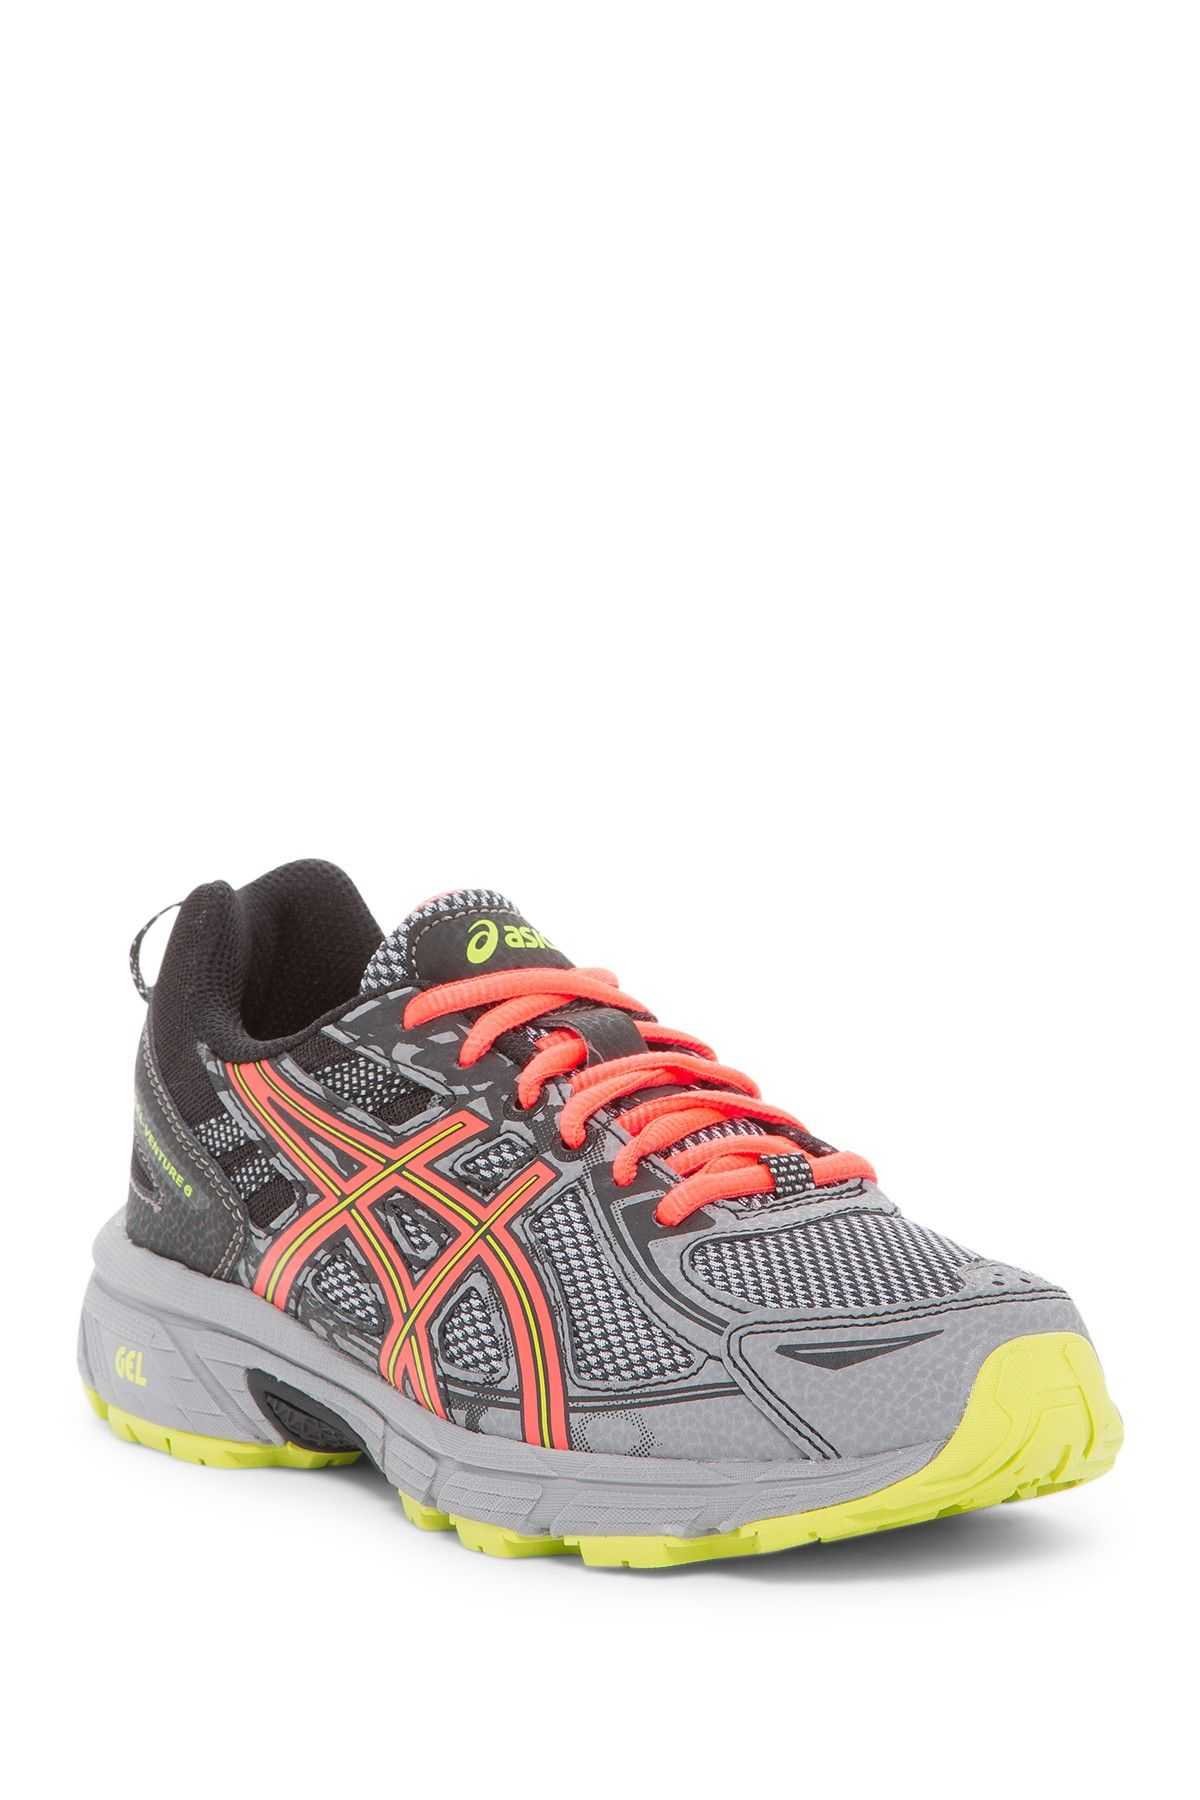 bed91e8c6cf Asics GEL-Venture 6 Trail Running Sneaker | Products | Trail running ...